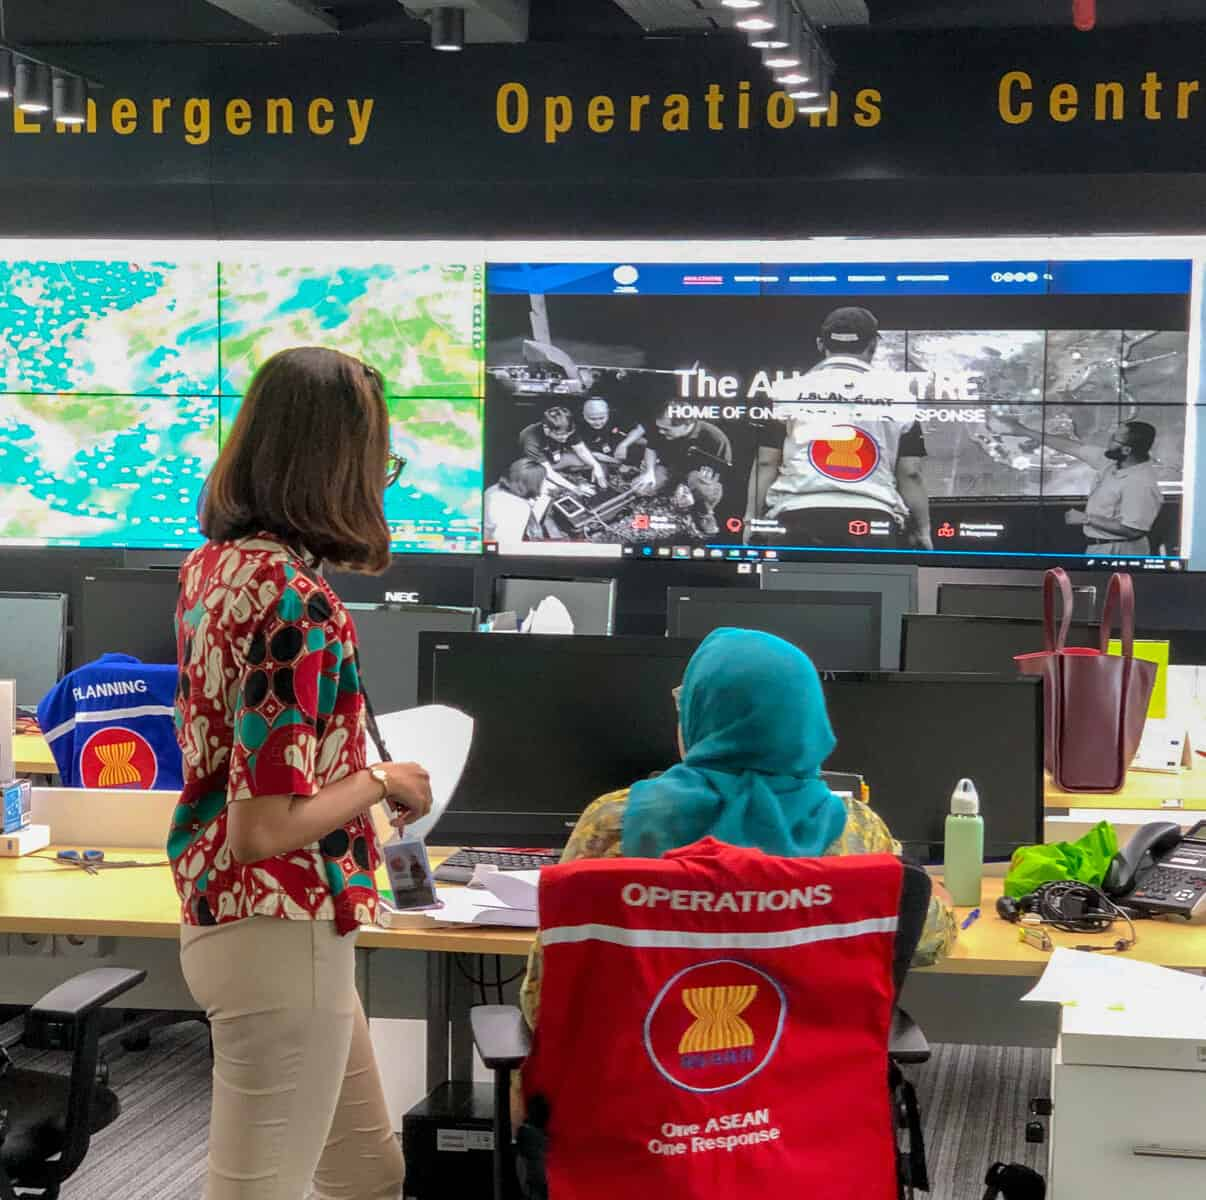 DMRS Training at AHA Centre, two users at the Emergency Operations Center